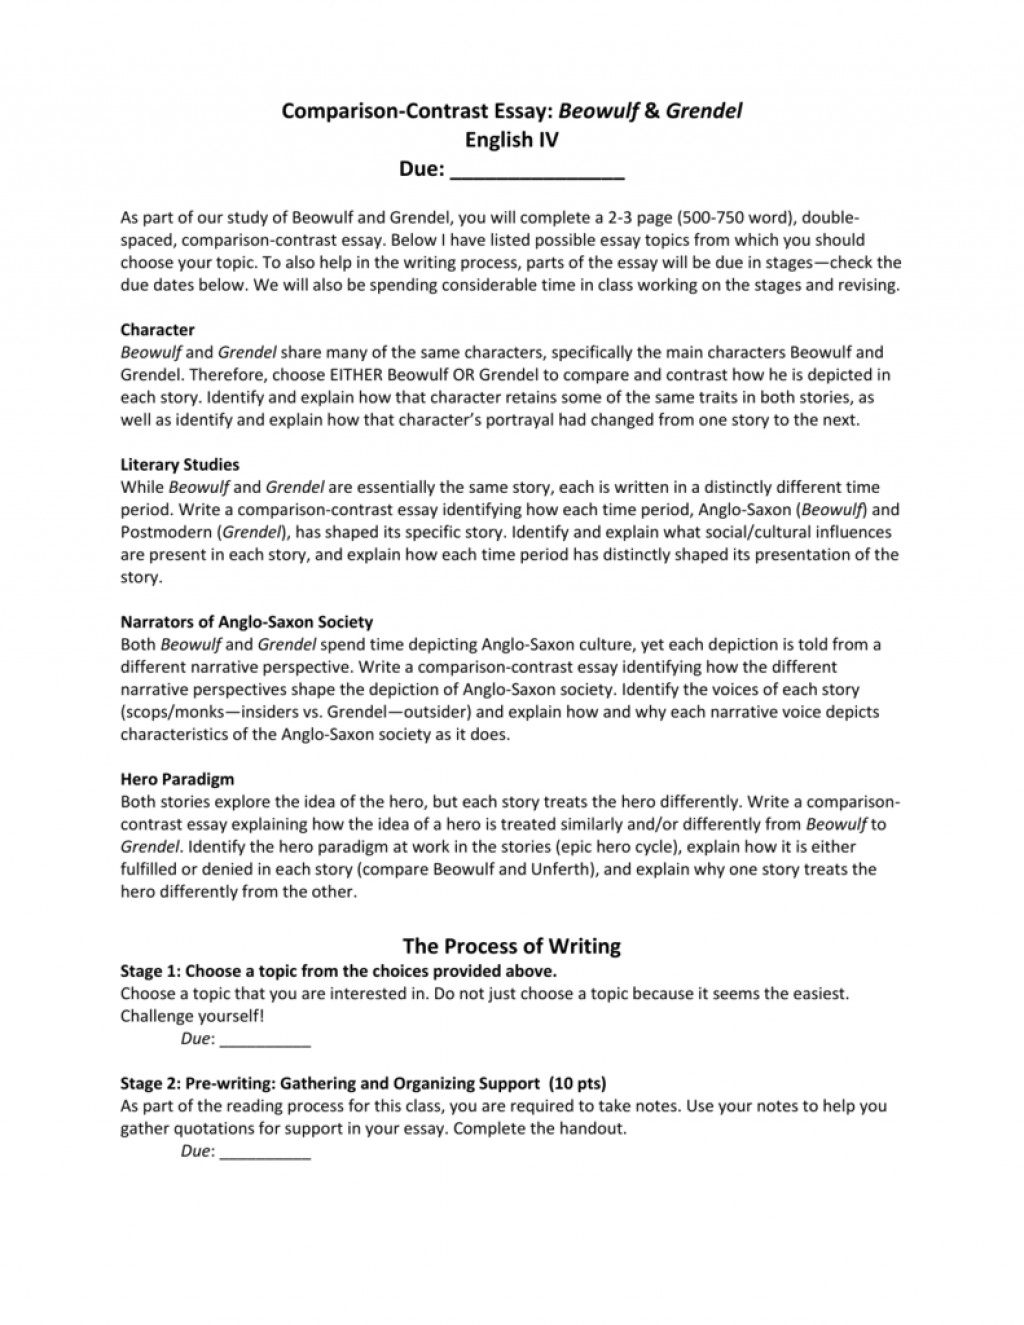 014 Essay Example 008061732 1 Comparison Beautiful Contrast Topics Compare And Structure Block Method Pdf Large